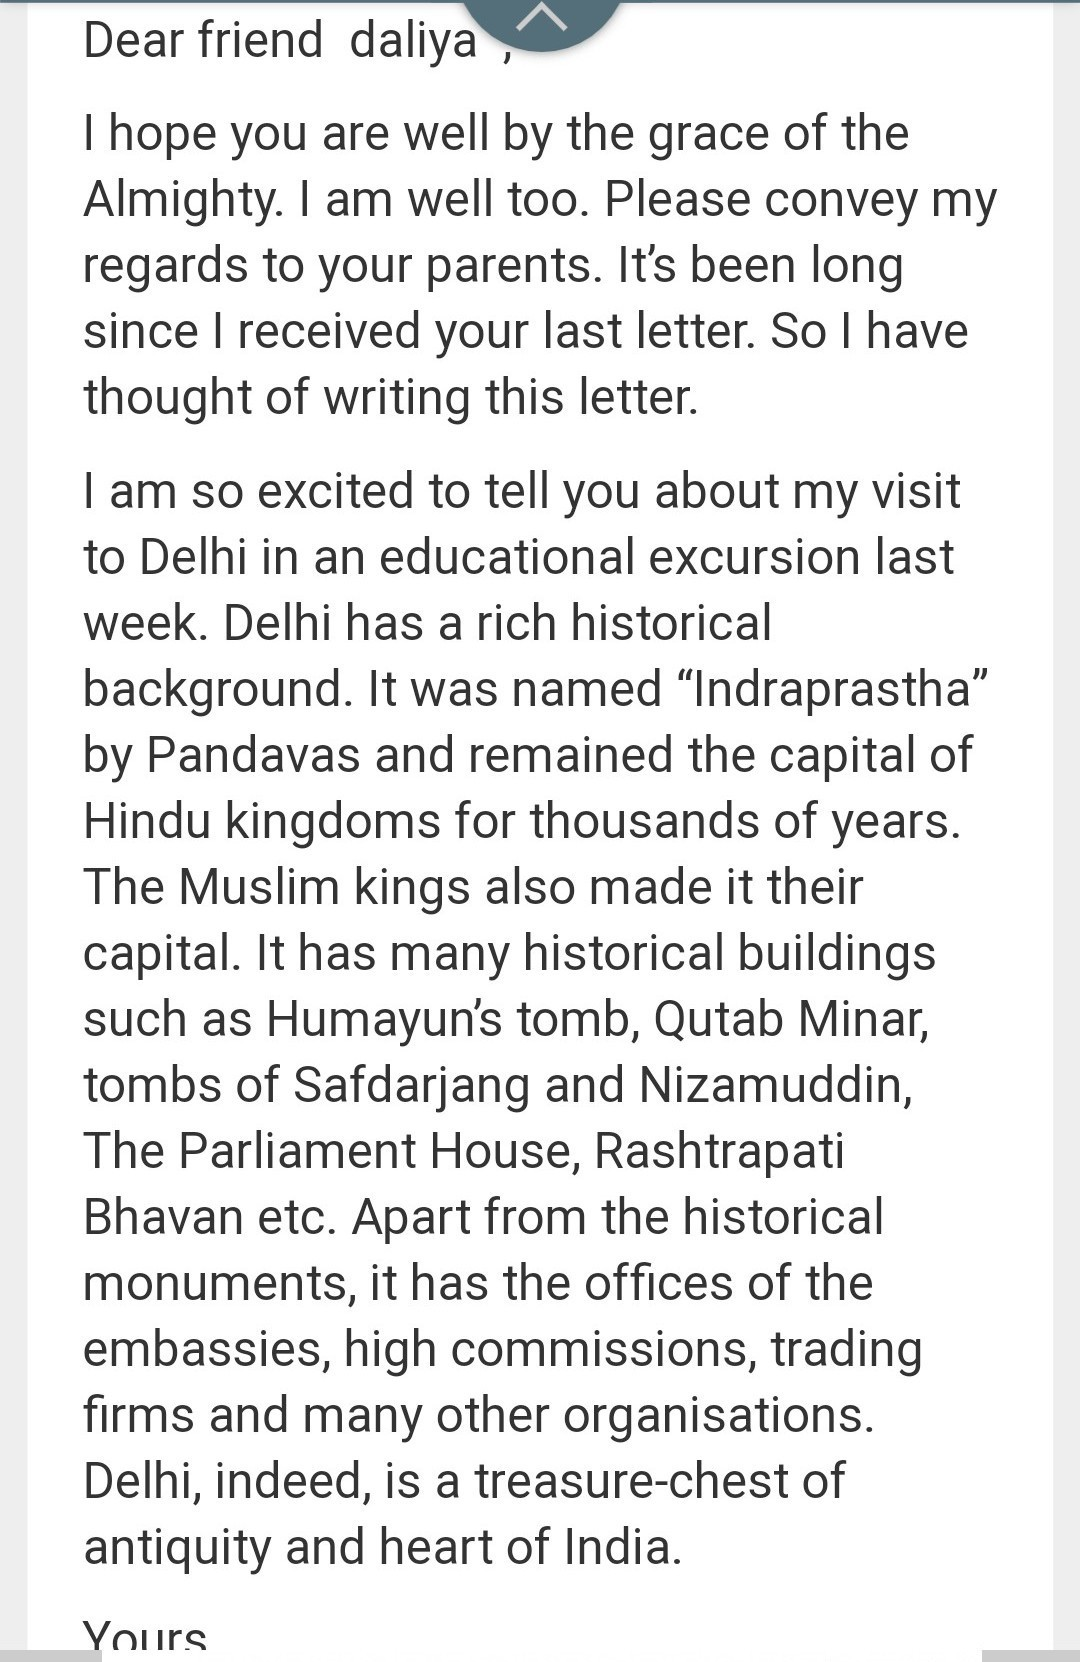 write a letter to your friend about your visit to a historical place in english